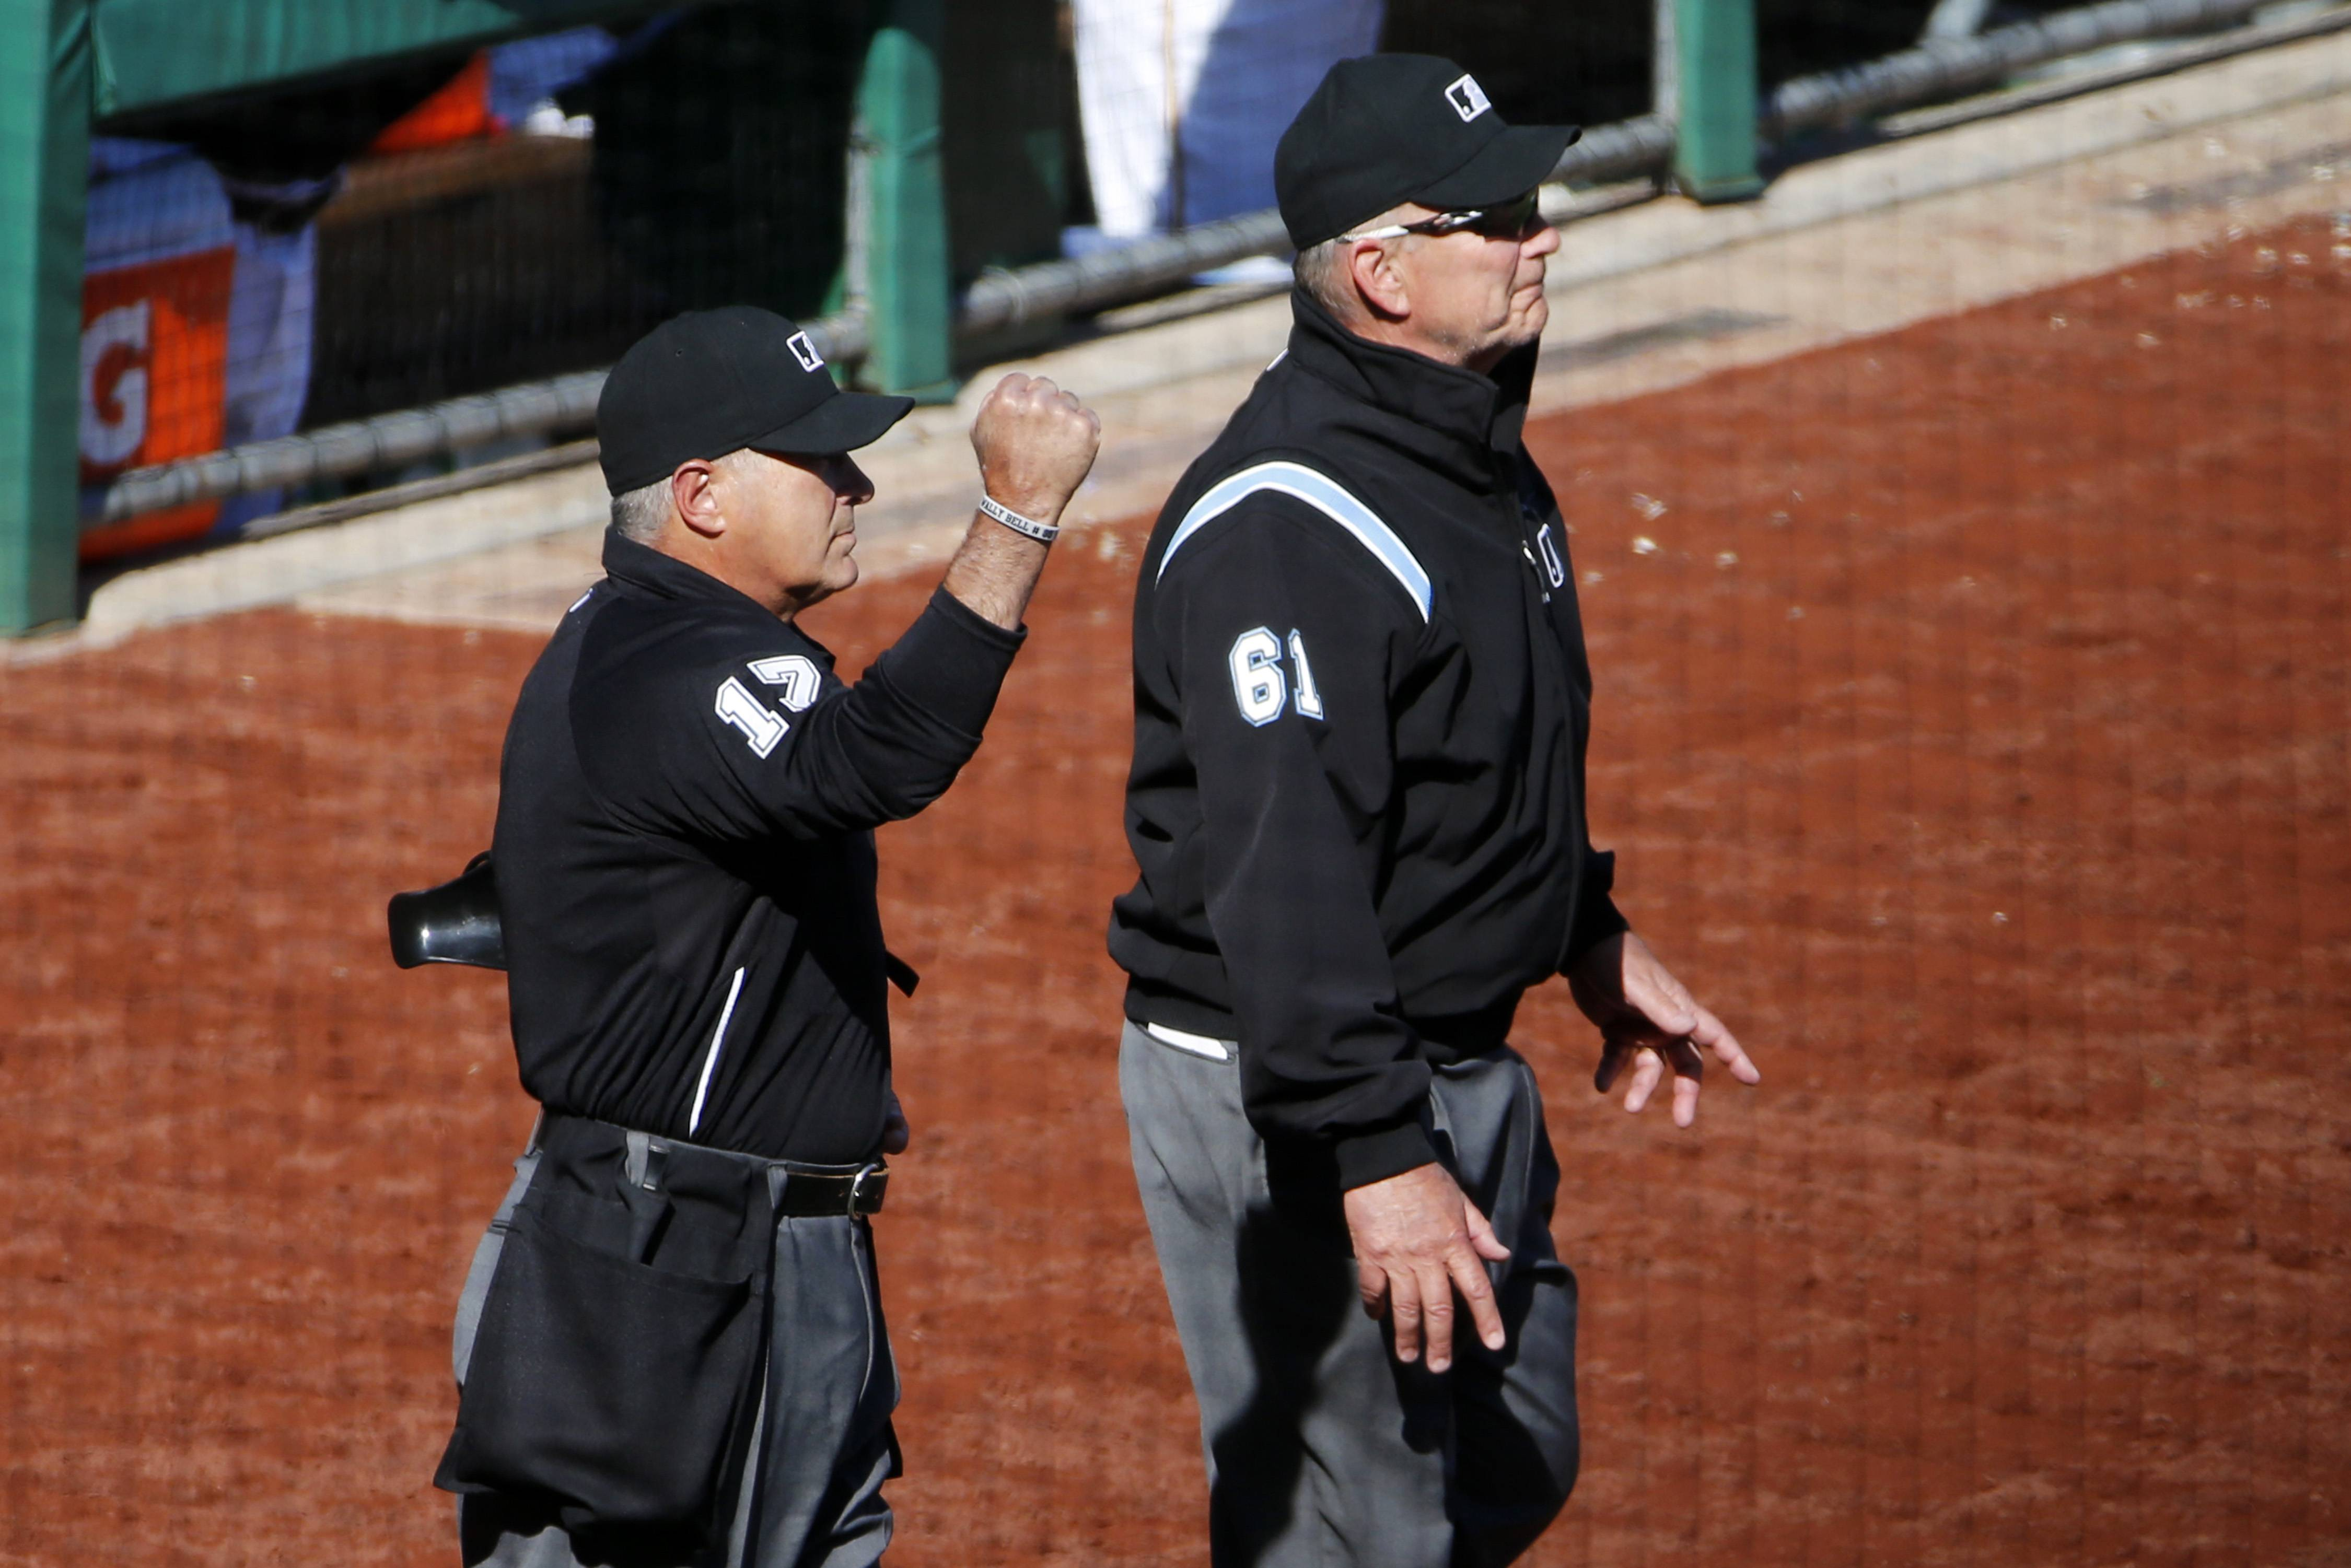 Home plate umpire John Hirschbeck, left, makes the out call at first base after he and first base umpire Bob Davidson (61) were asked by the Pirates for a review of a pickoff safe call at first base in the 10th inning Monday.